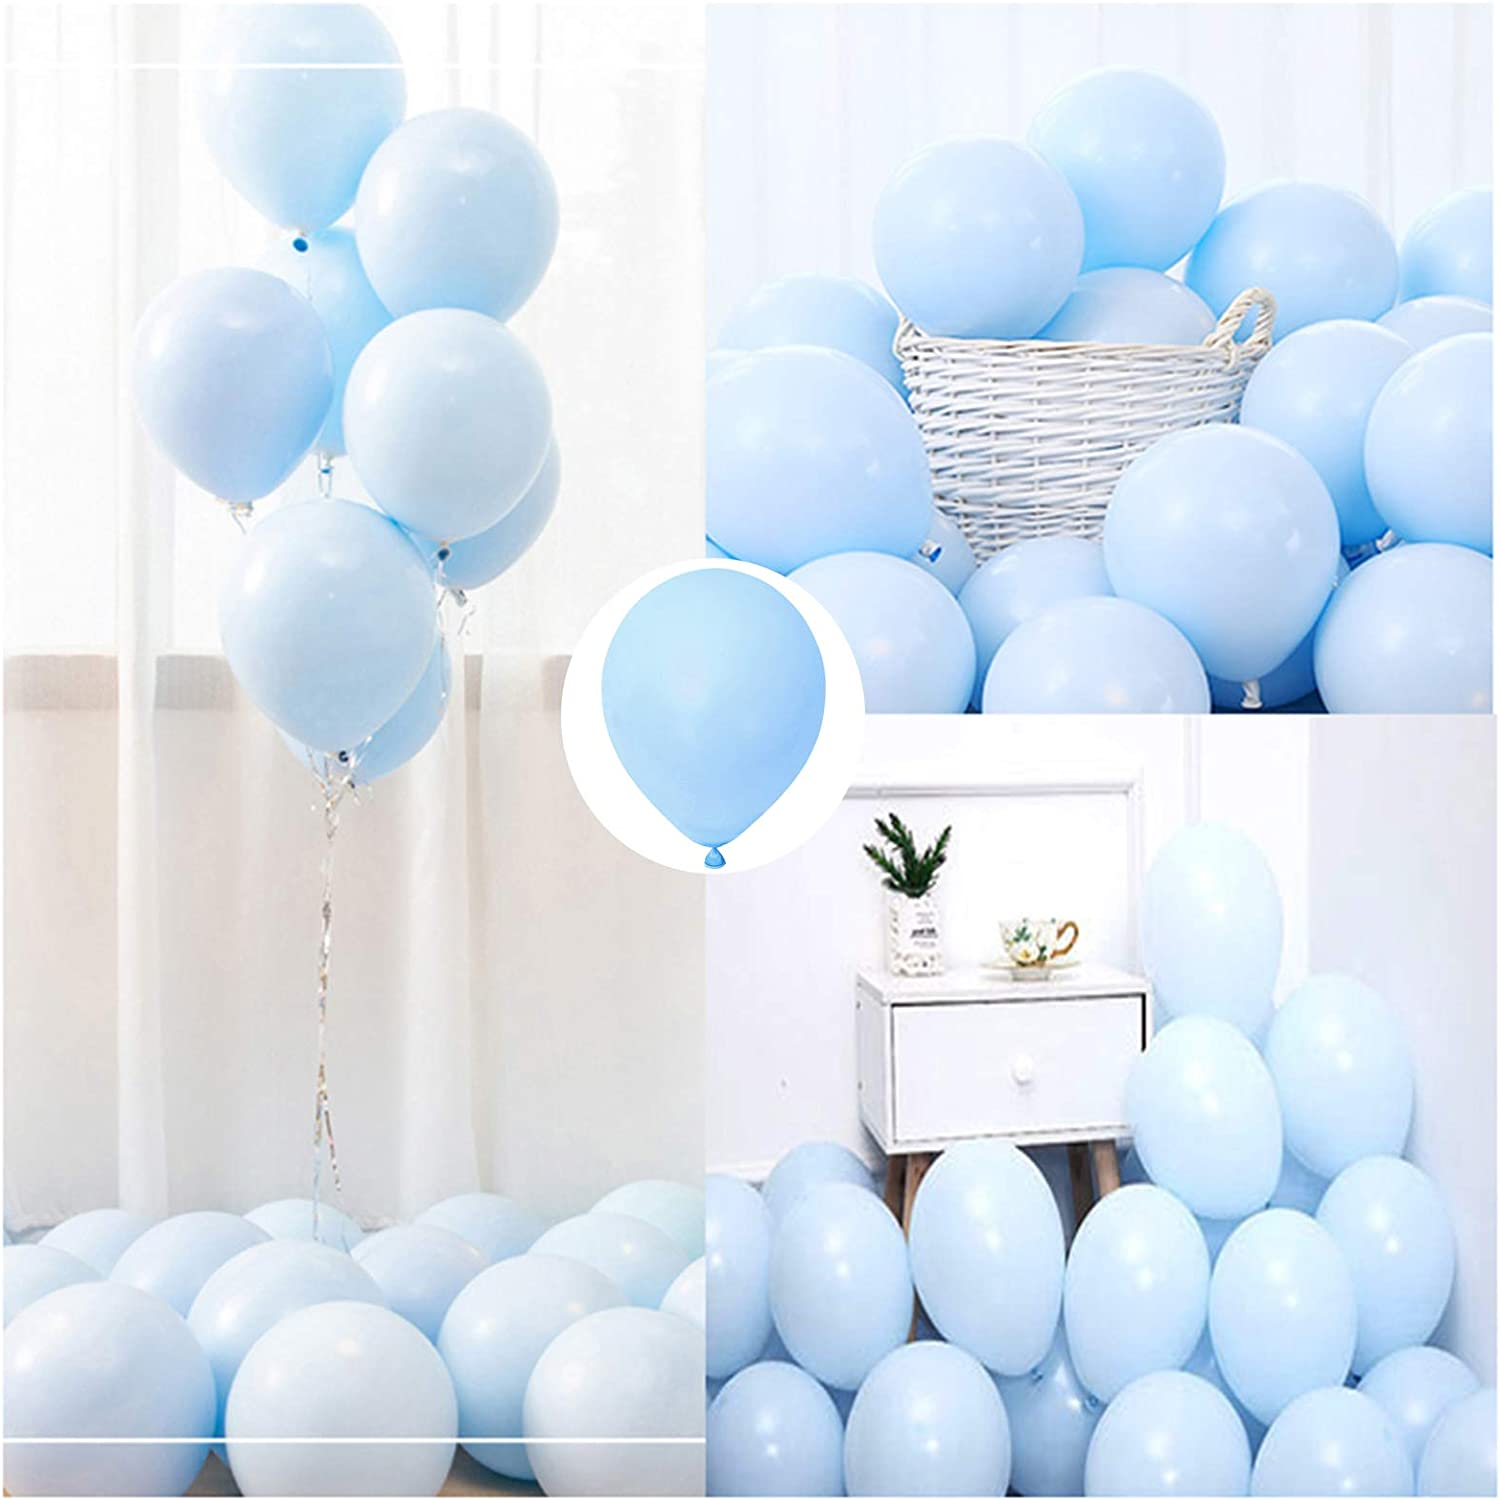 Party Pastel Balloons 100 pcs 10 inch Macaron Candy Colored Late